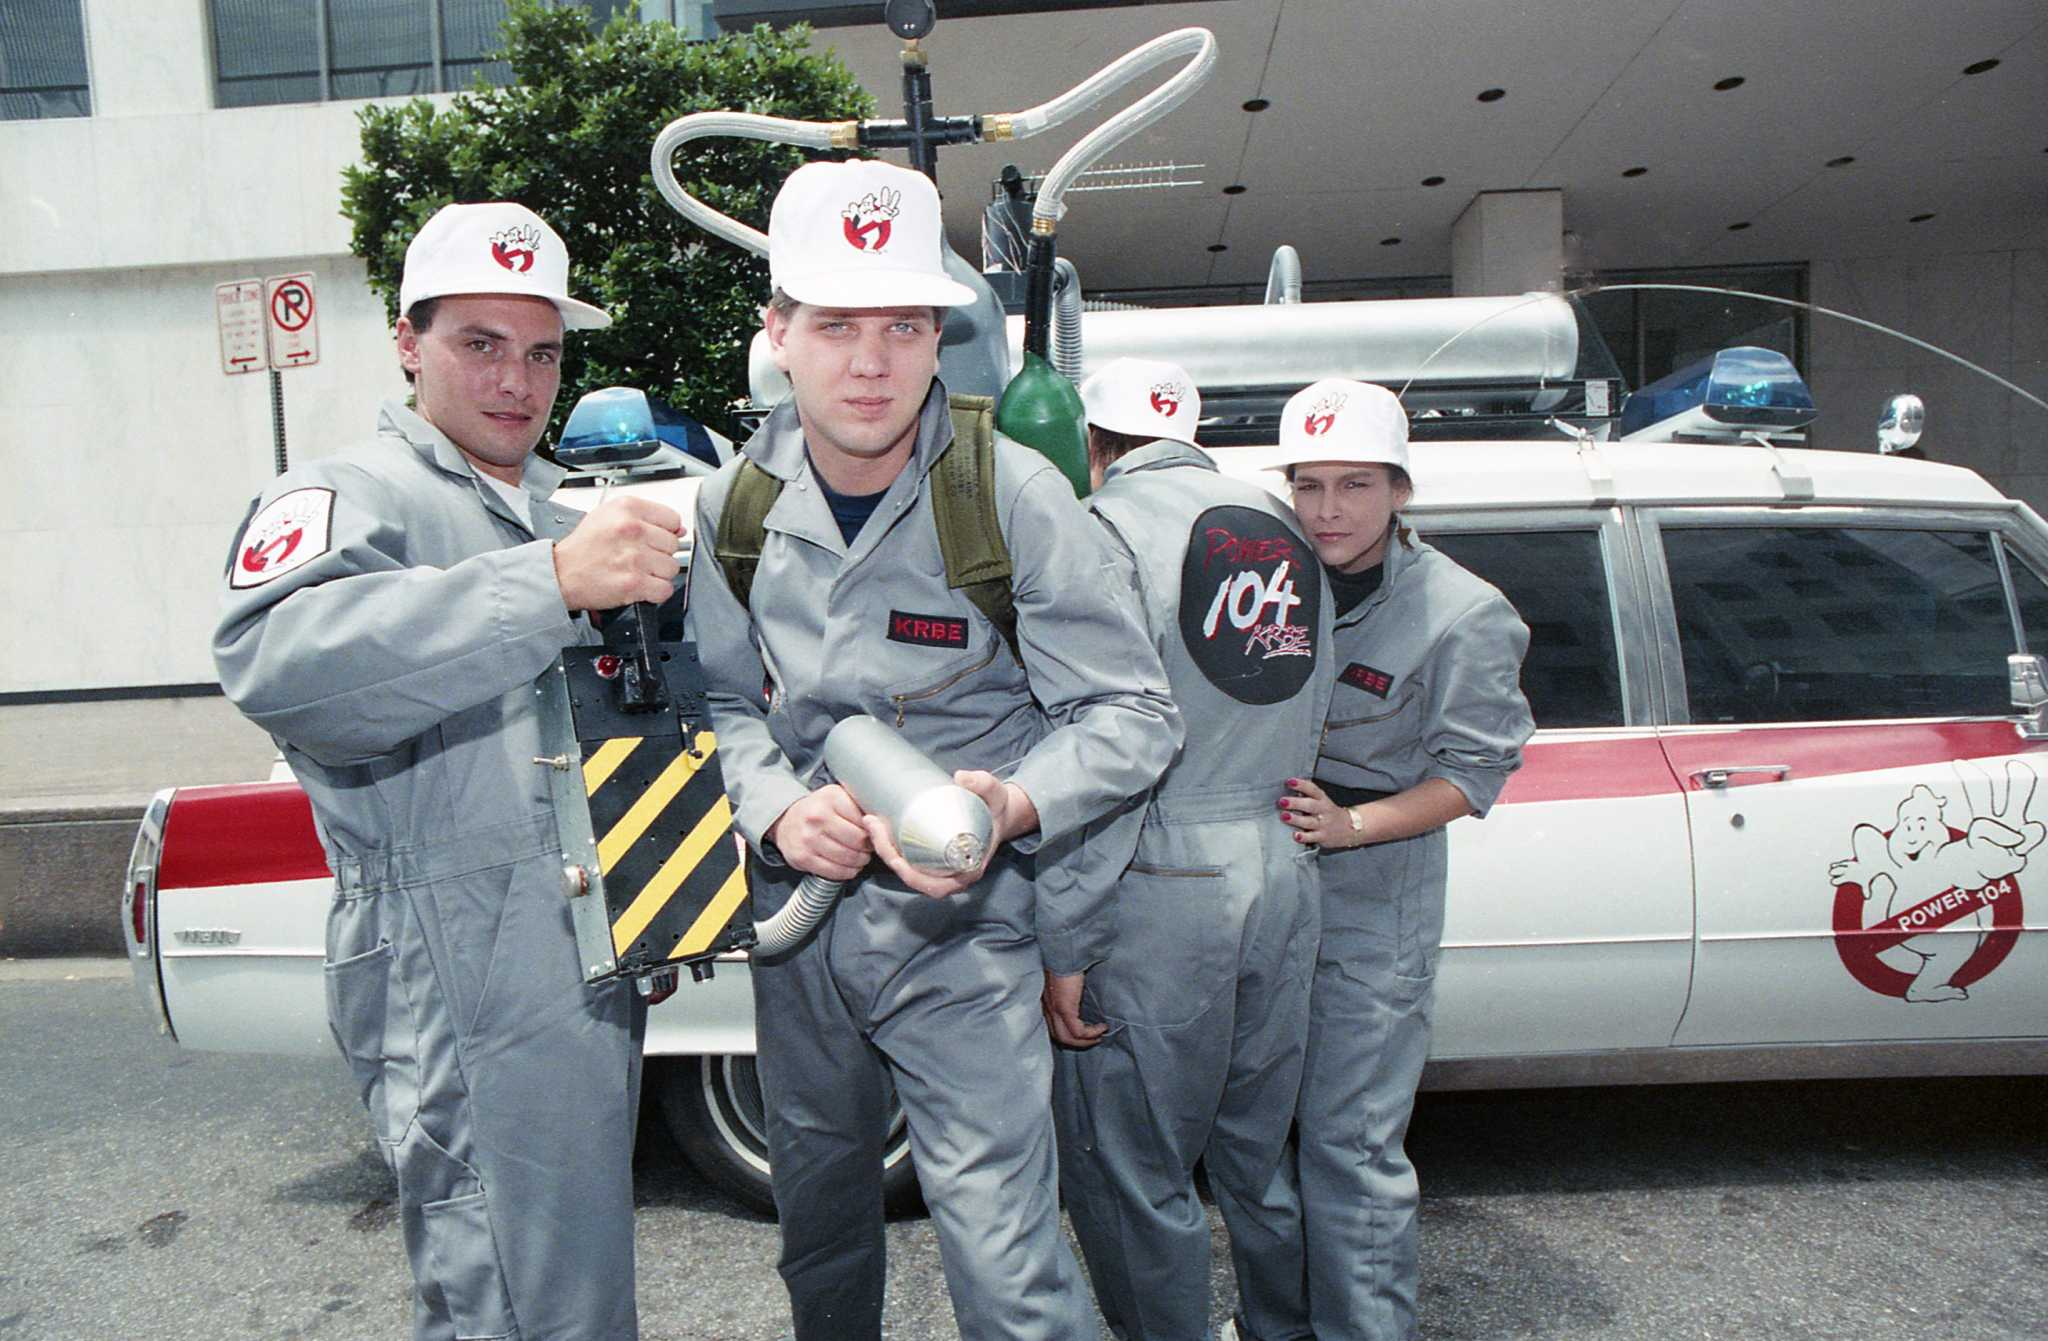 KRBE's own Ghostbusters, a hospital closes and more from June 1989